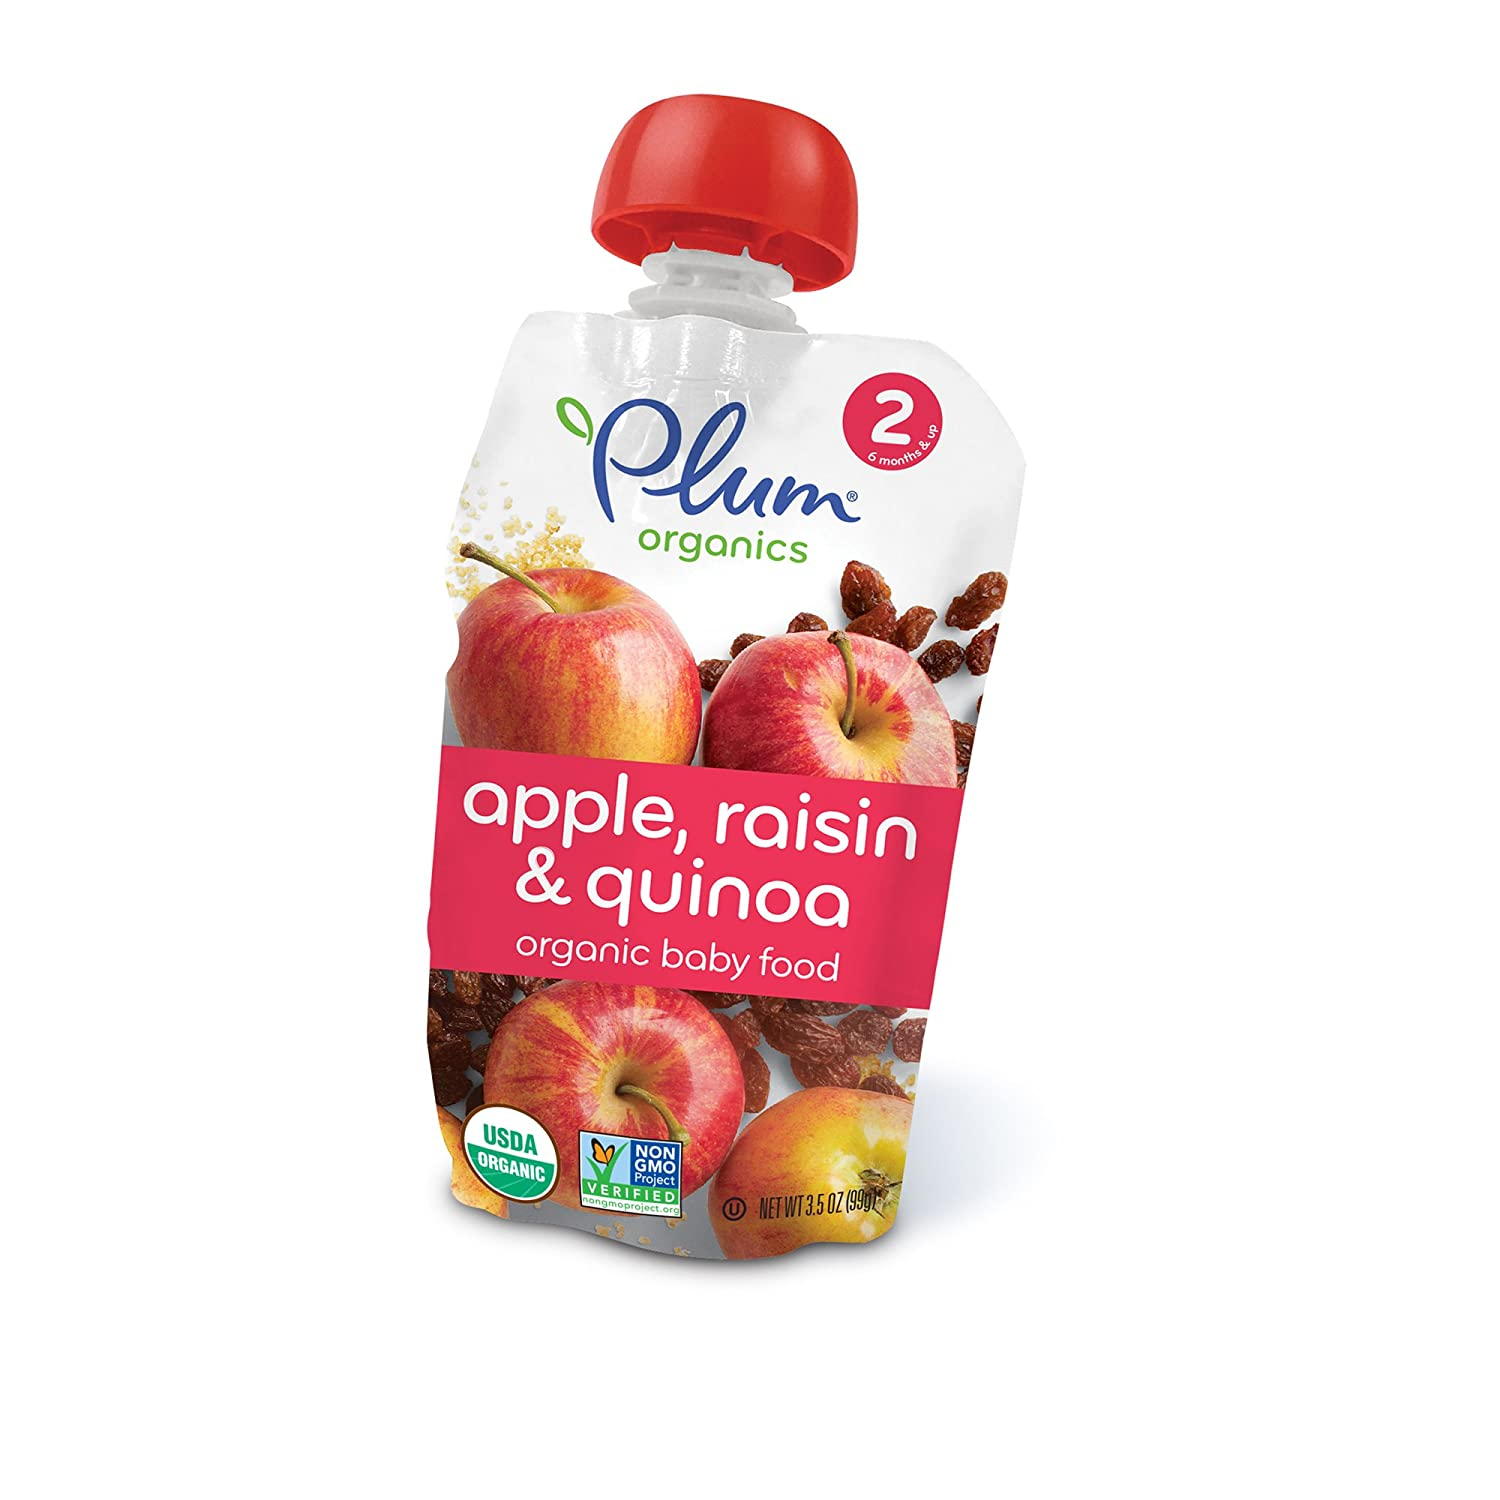 Plum Organics Stage 2, Organic Baby Food, Apple, Plum, Berry and Barley, 3.5 ounce pouch (Pack of 12) Plum Organics Baby